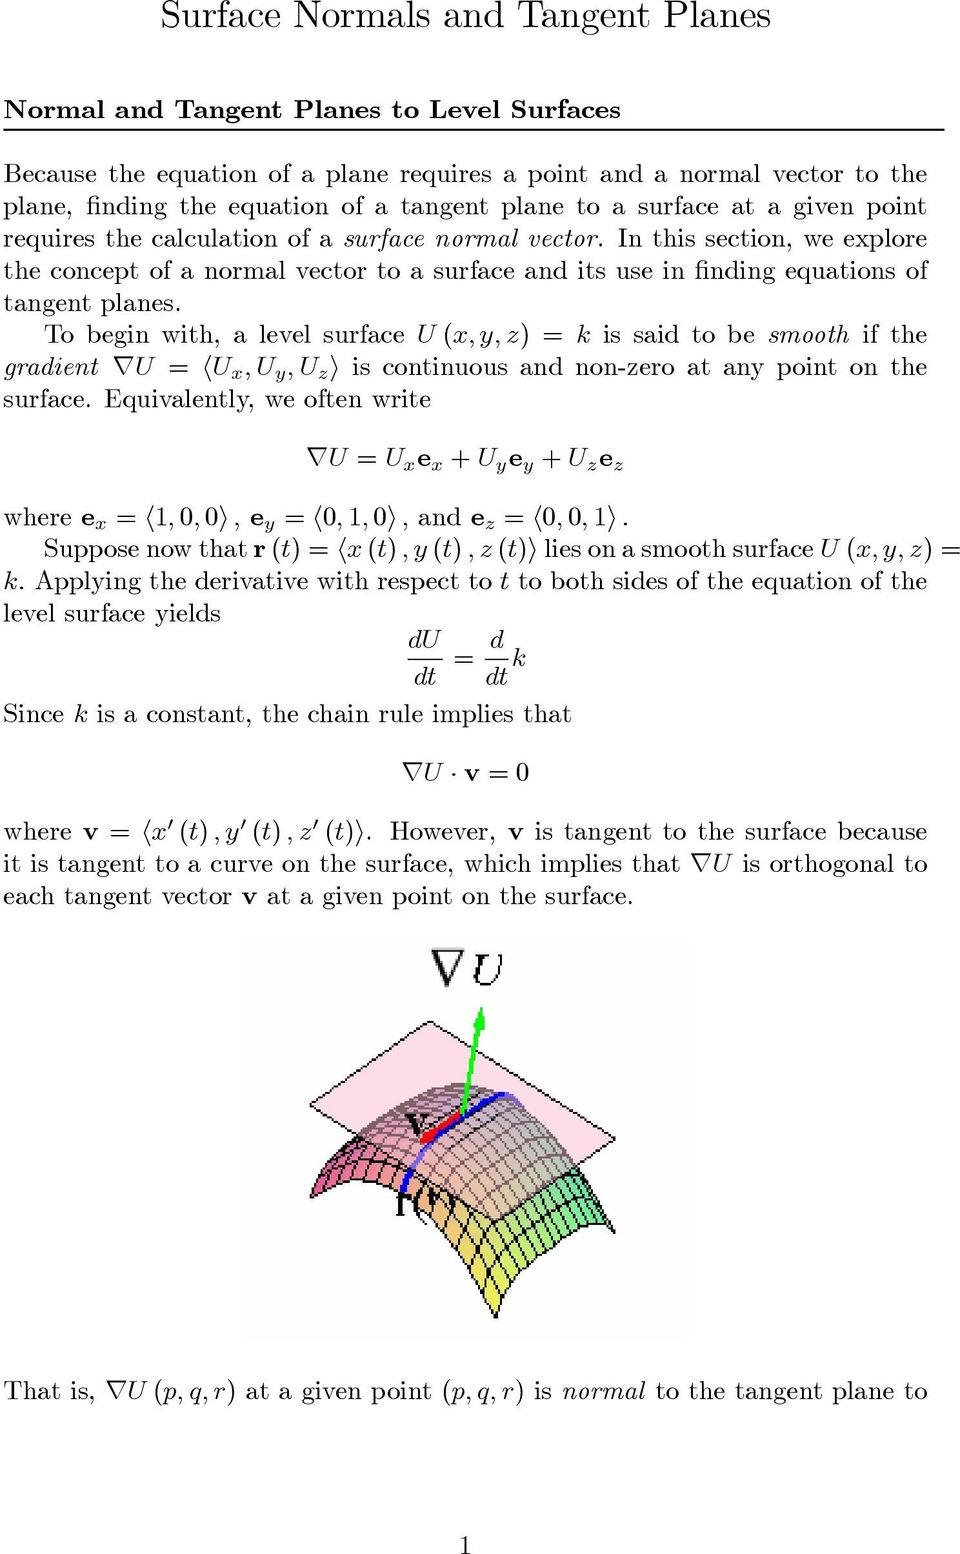 In this section, we explore the concept of a normal vector to a surface and its use in nding equations of tangent planes.